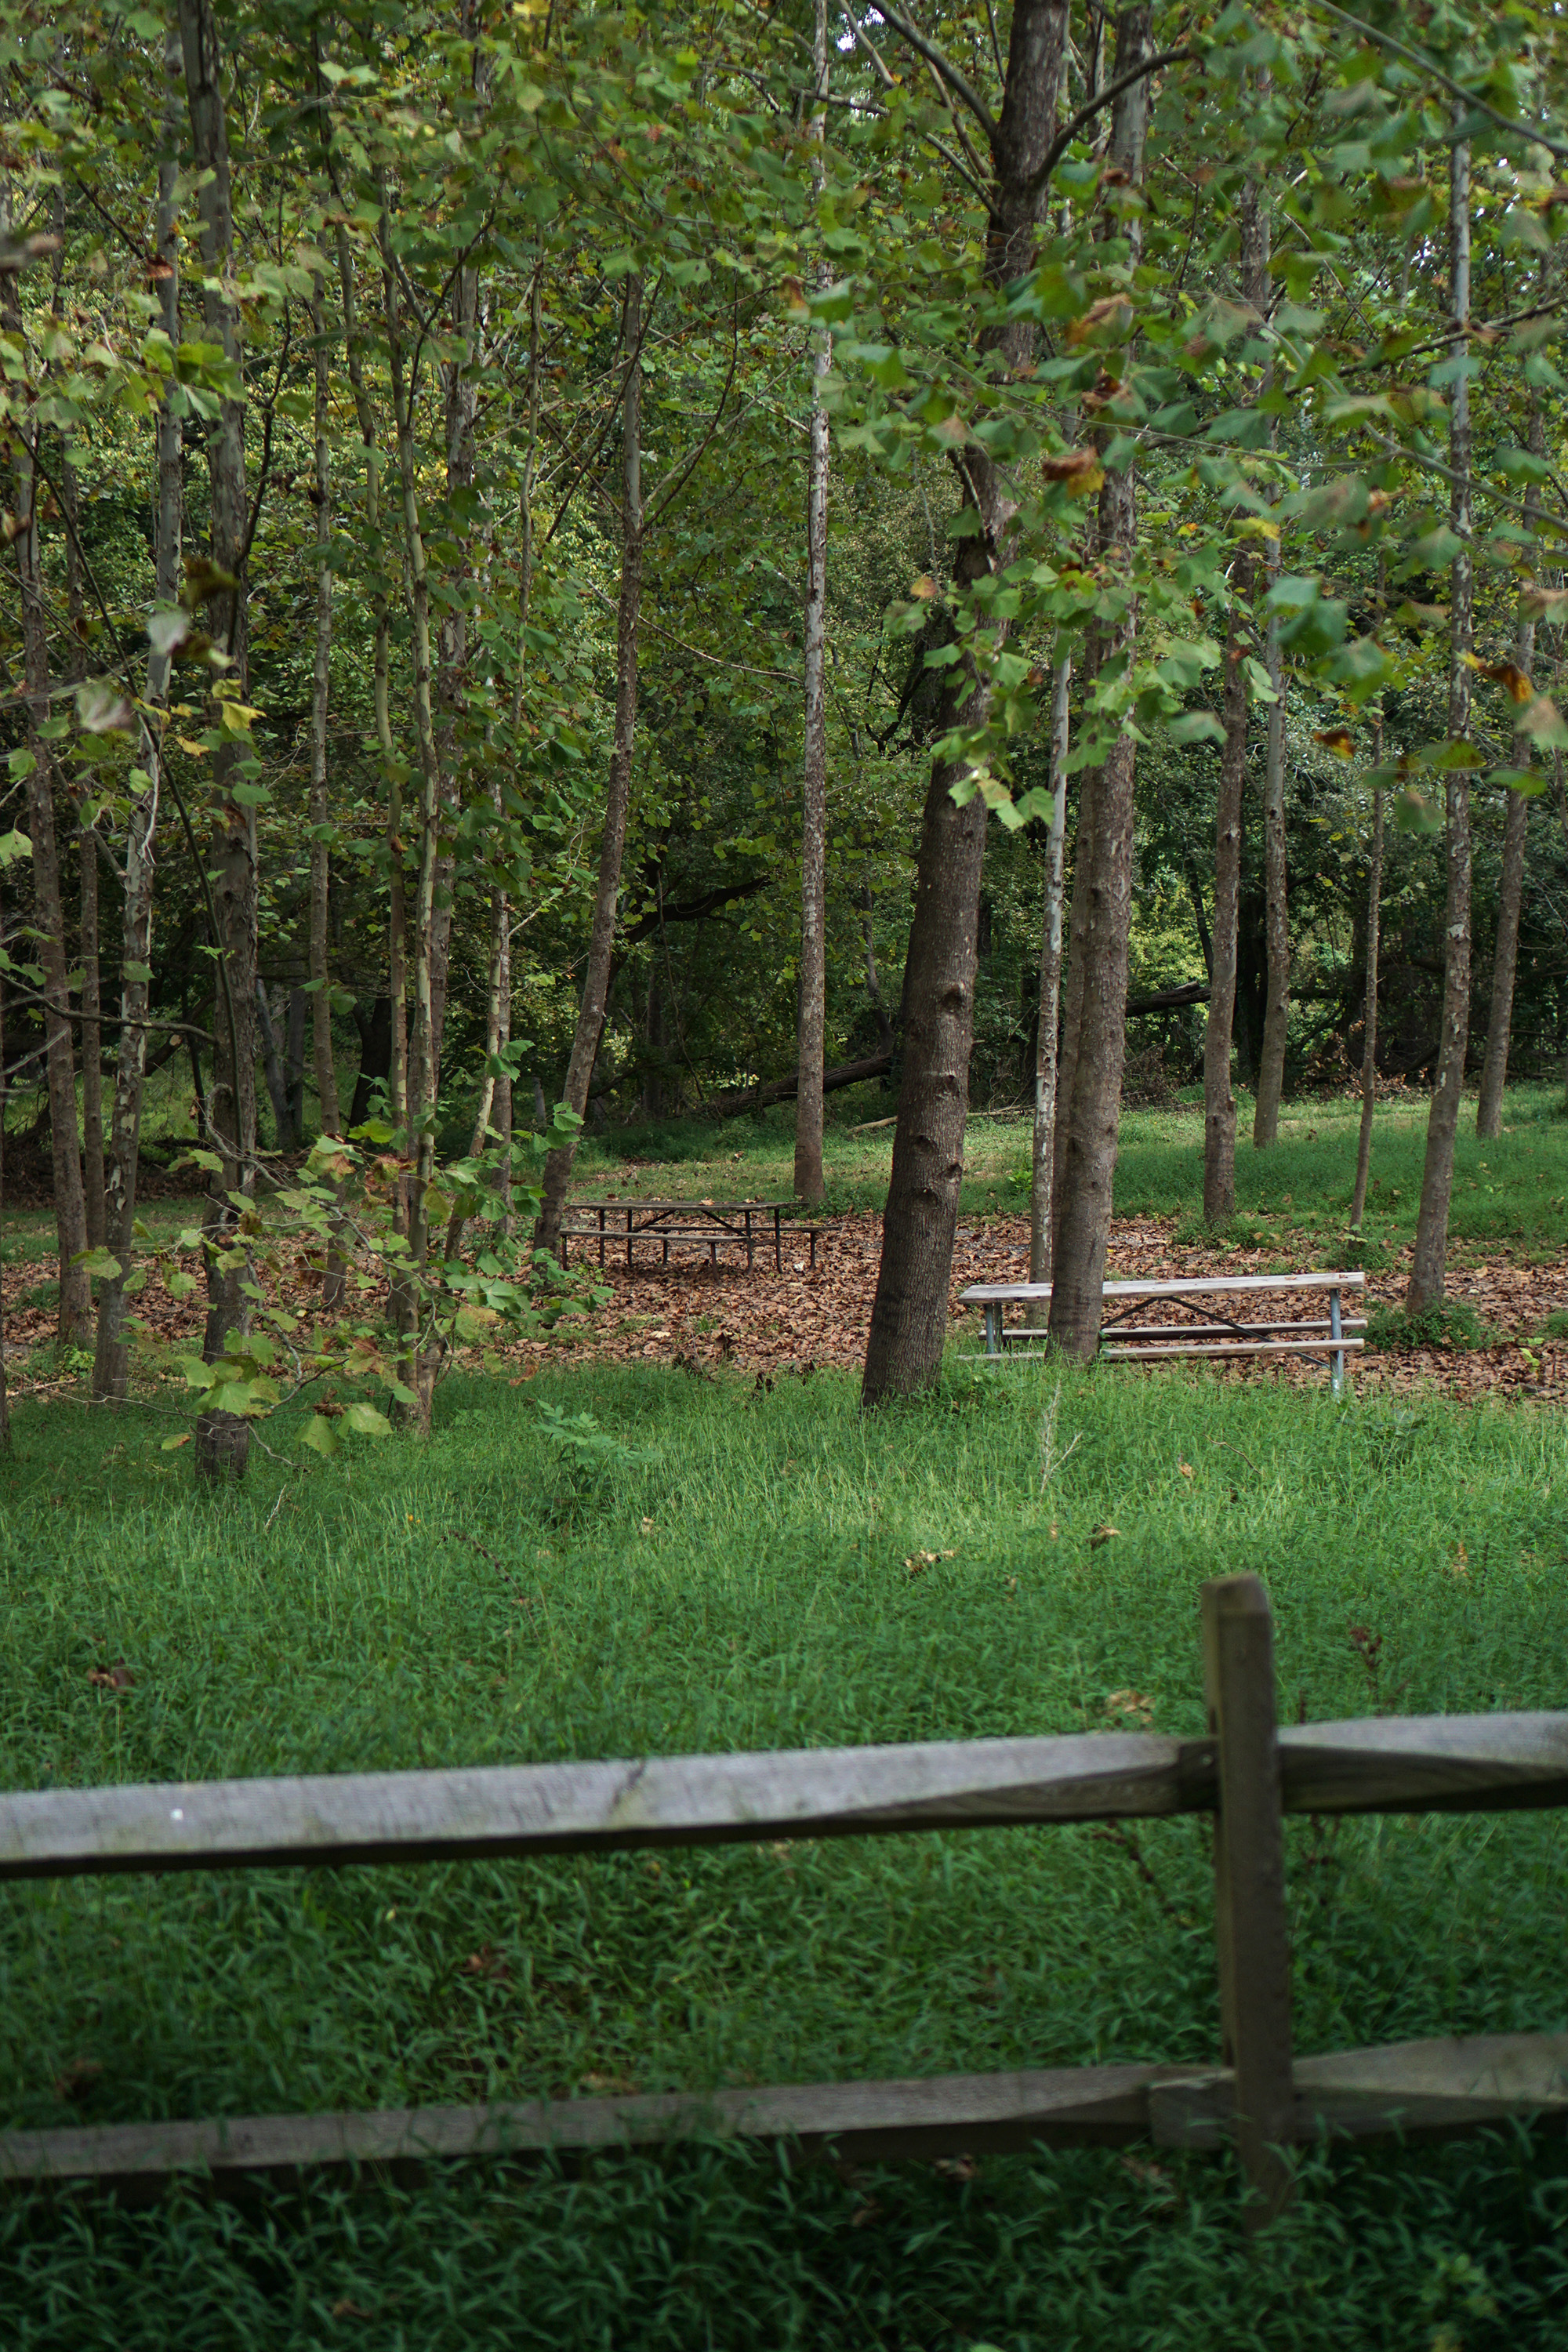 Picnic area among the trees, Patapsco Valley State Park, Maryland / Darker than Green